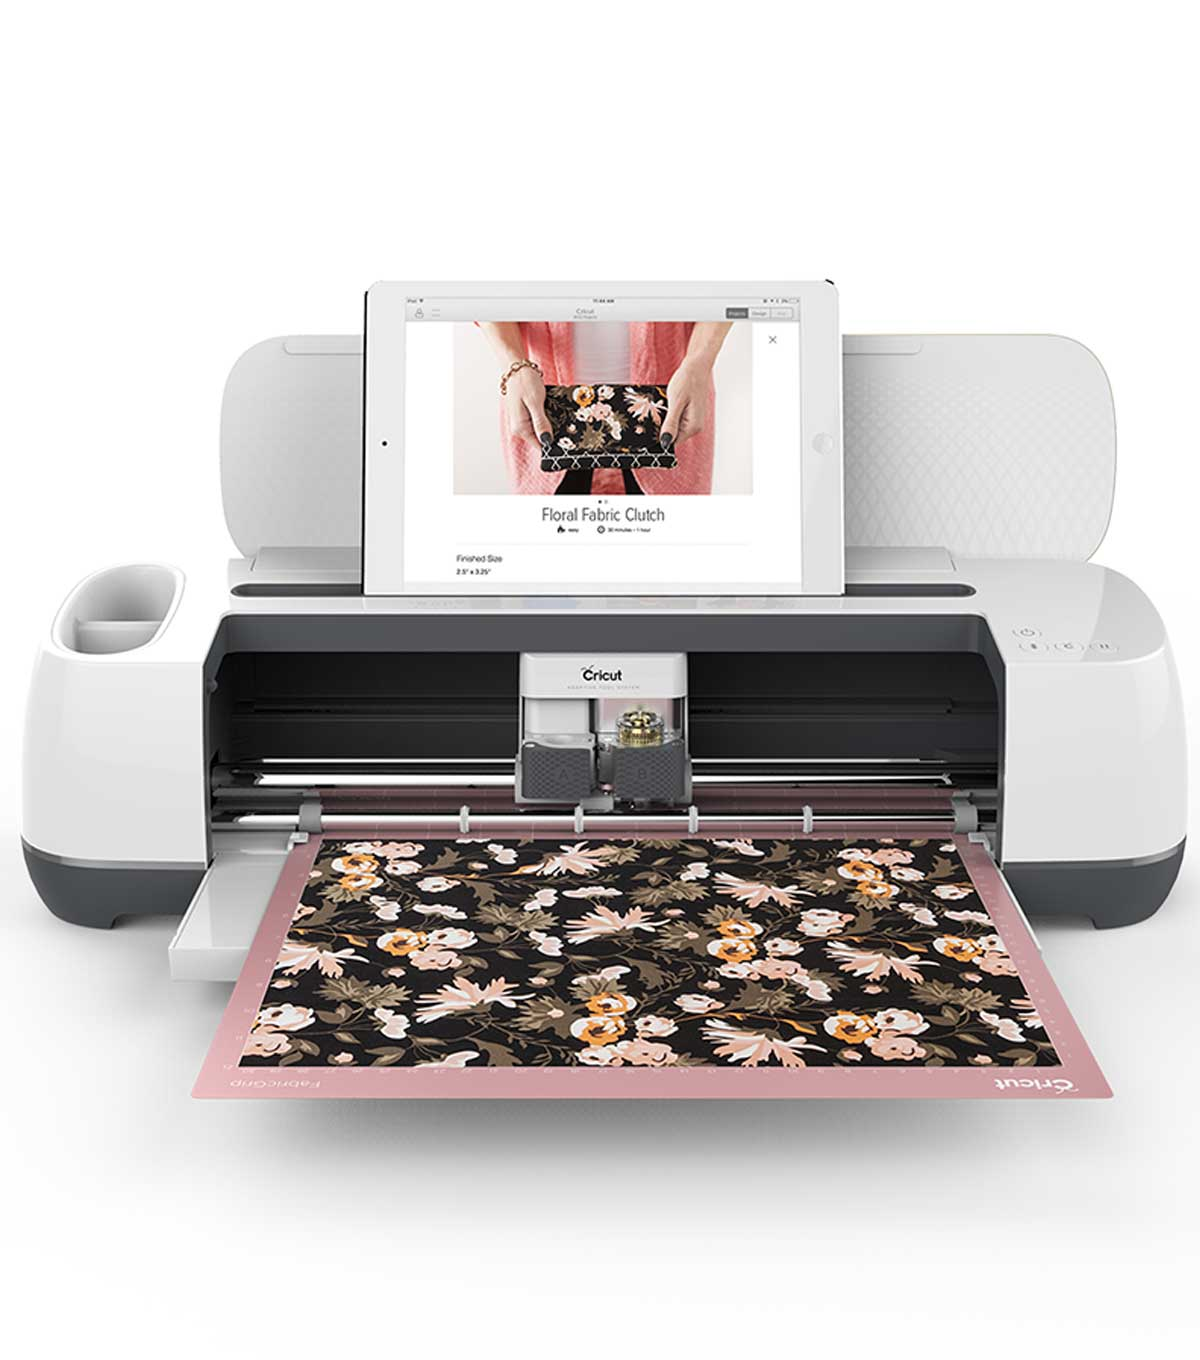 The Cricut Maker cuts out a beautiful floral pattern, with an iPad sitting comfortably on top.